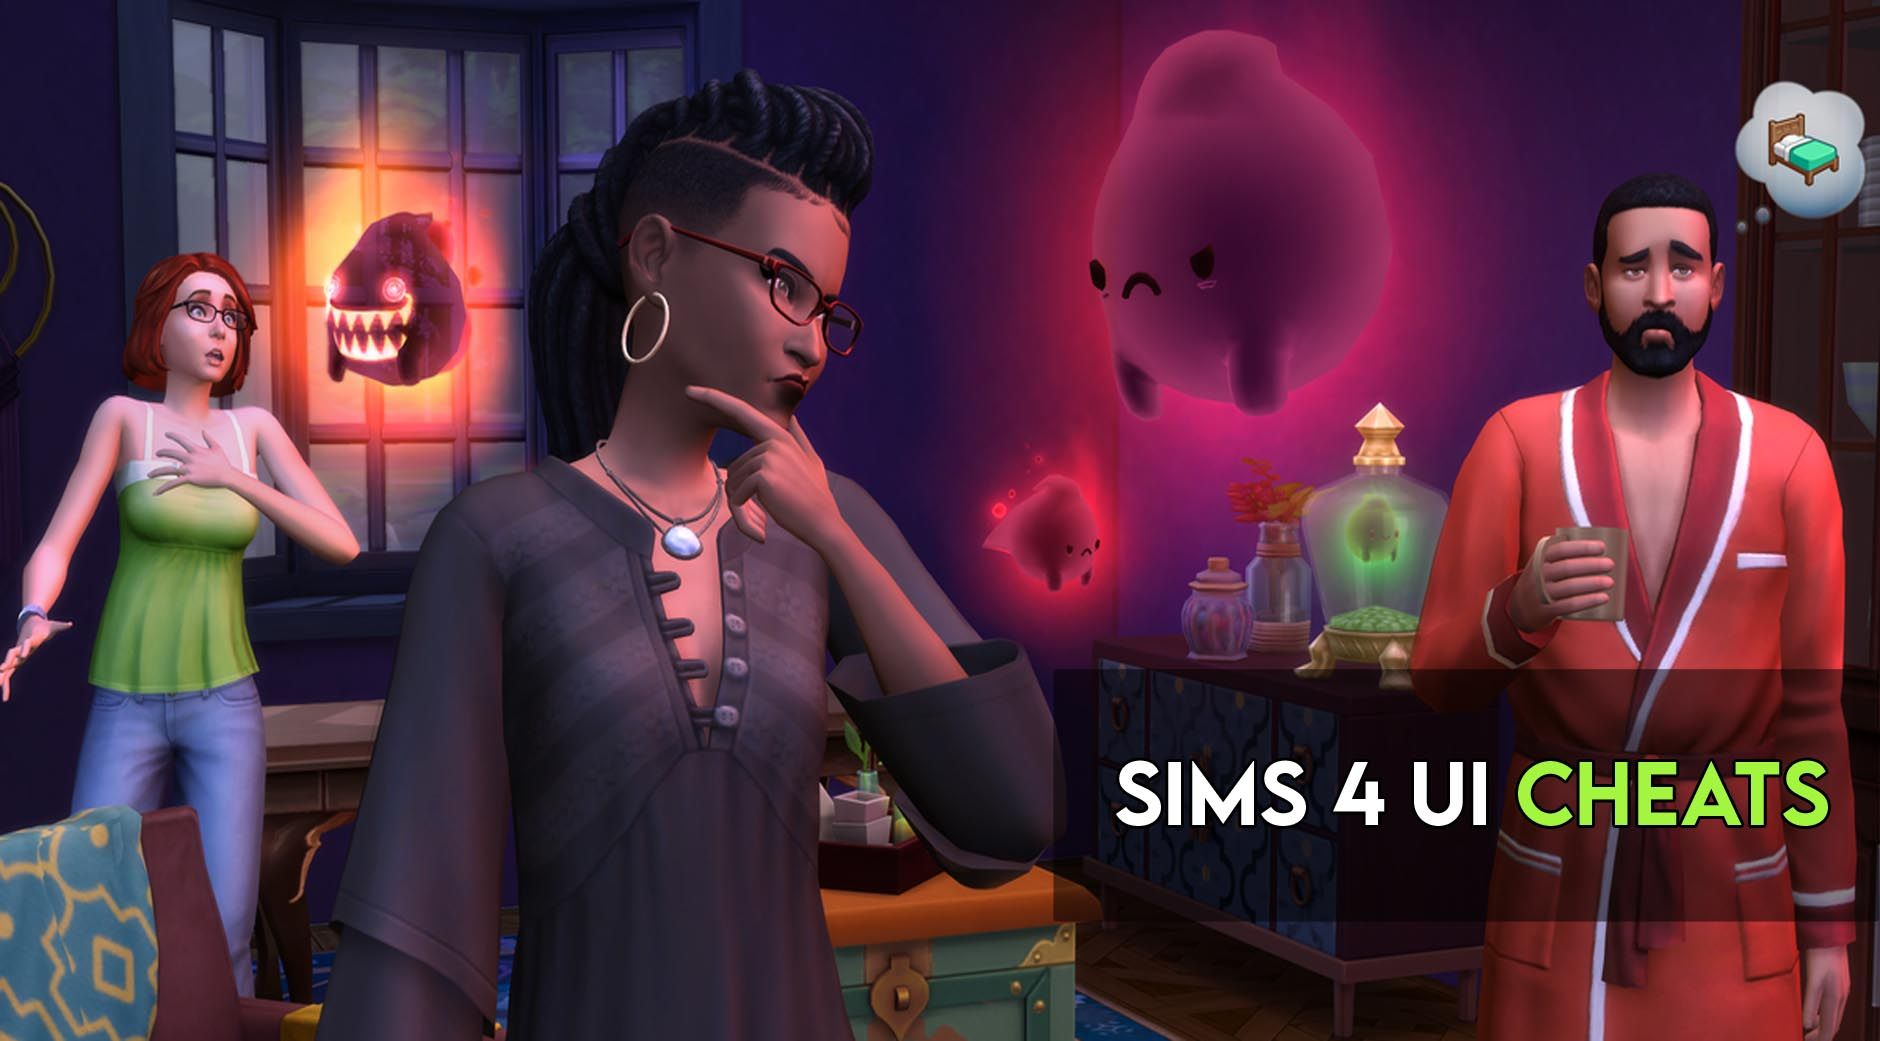 Sims 4 UI Cheats of 2021 With Complete Guide